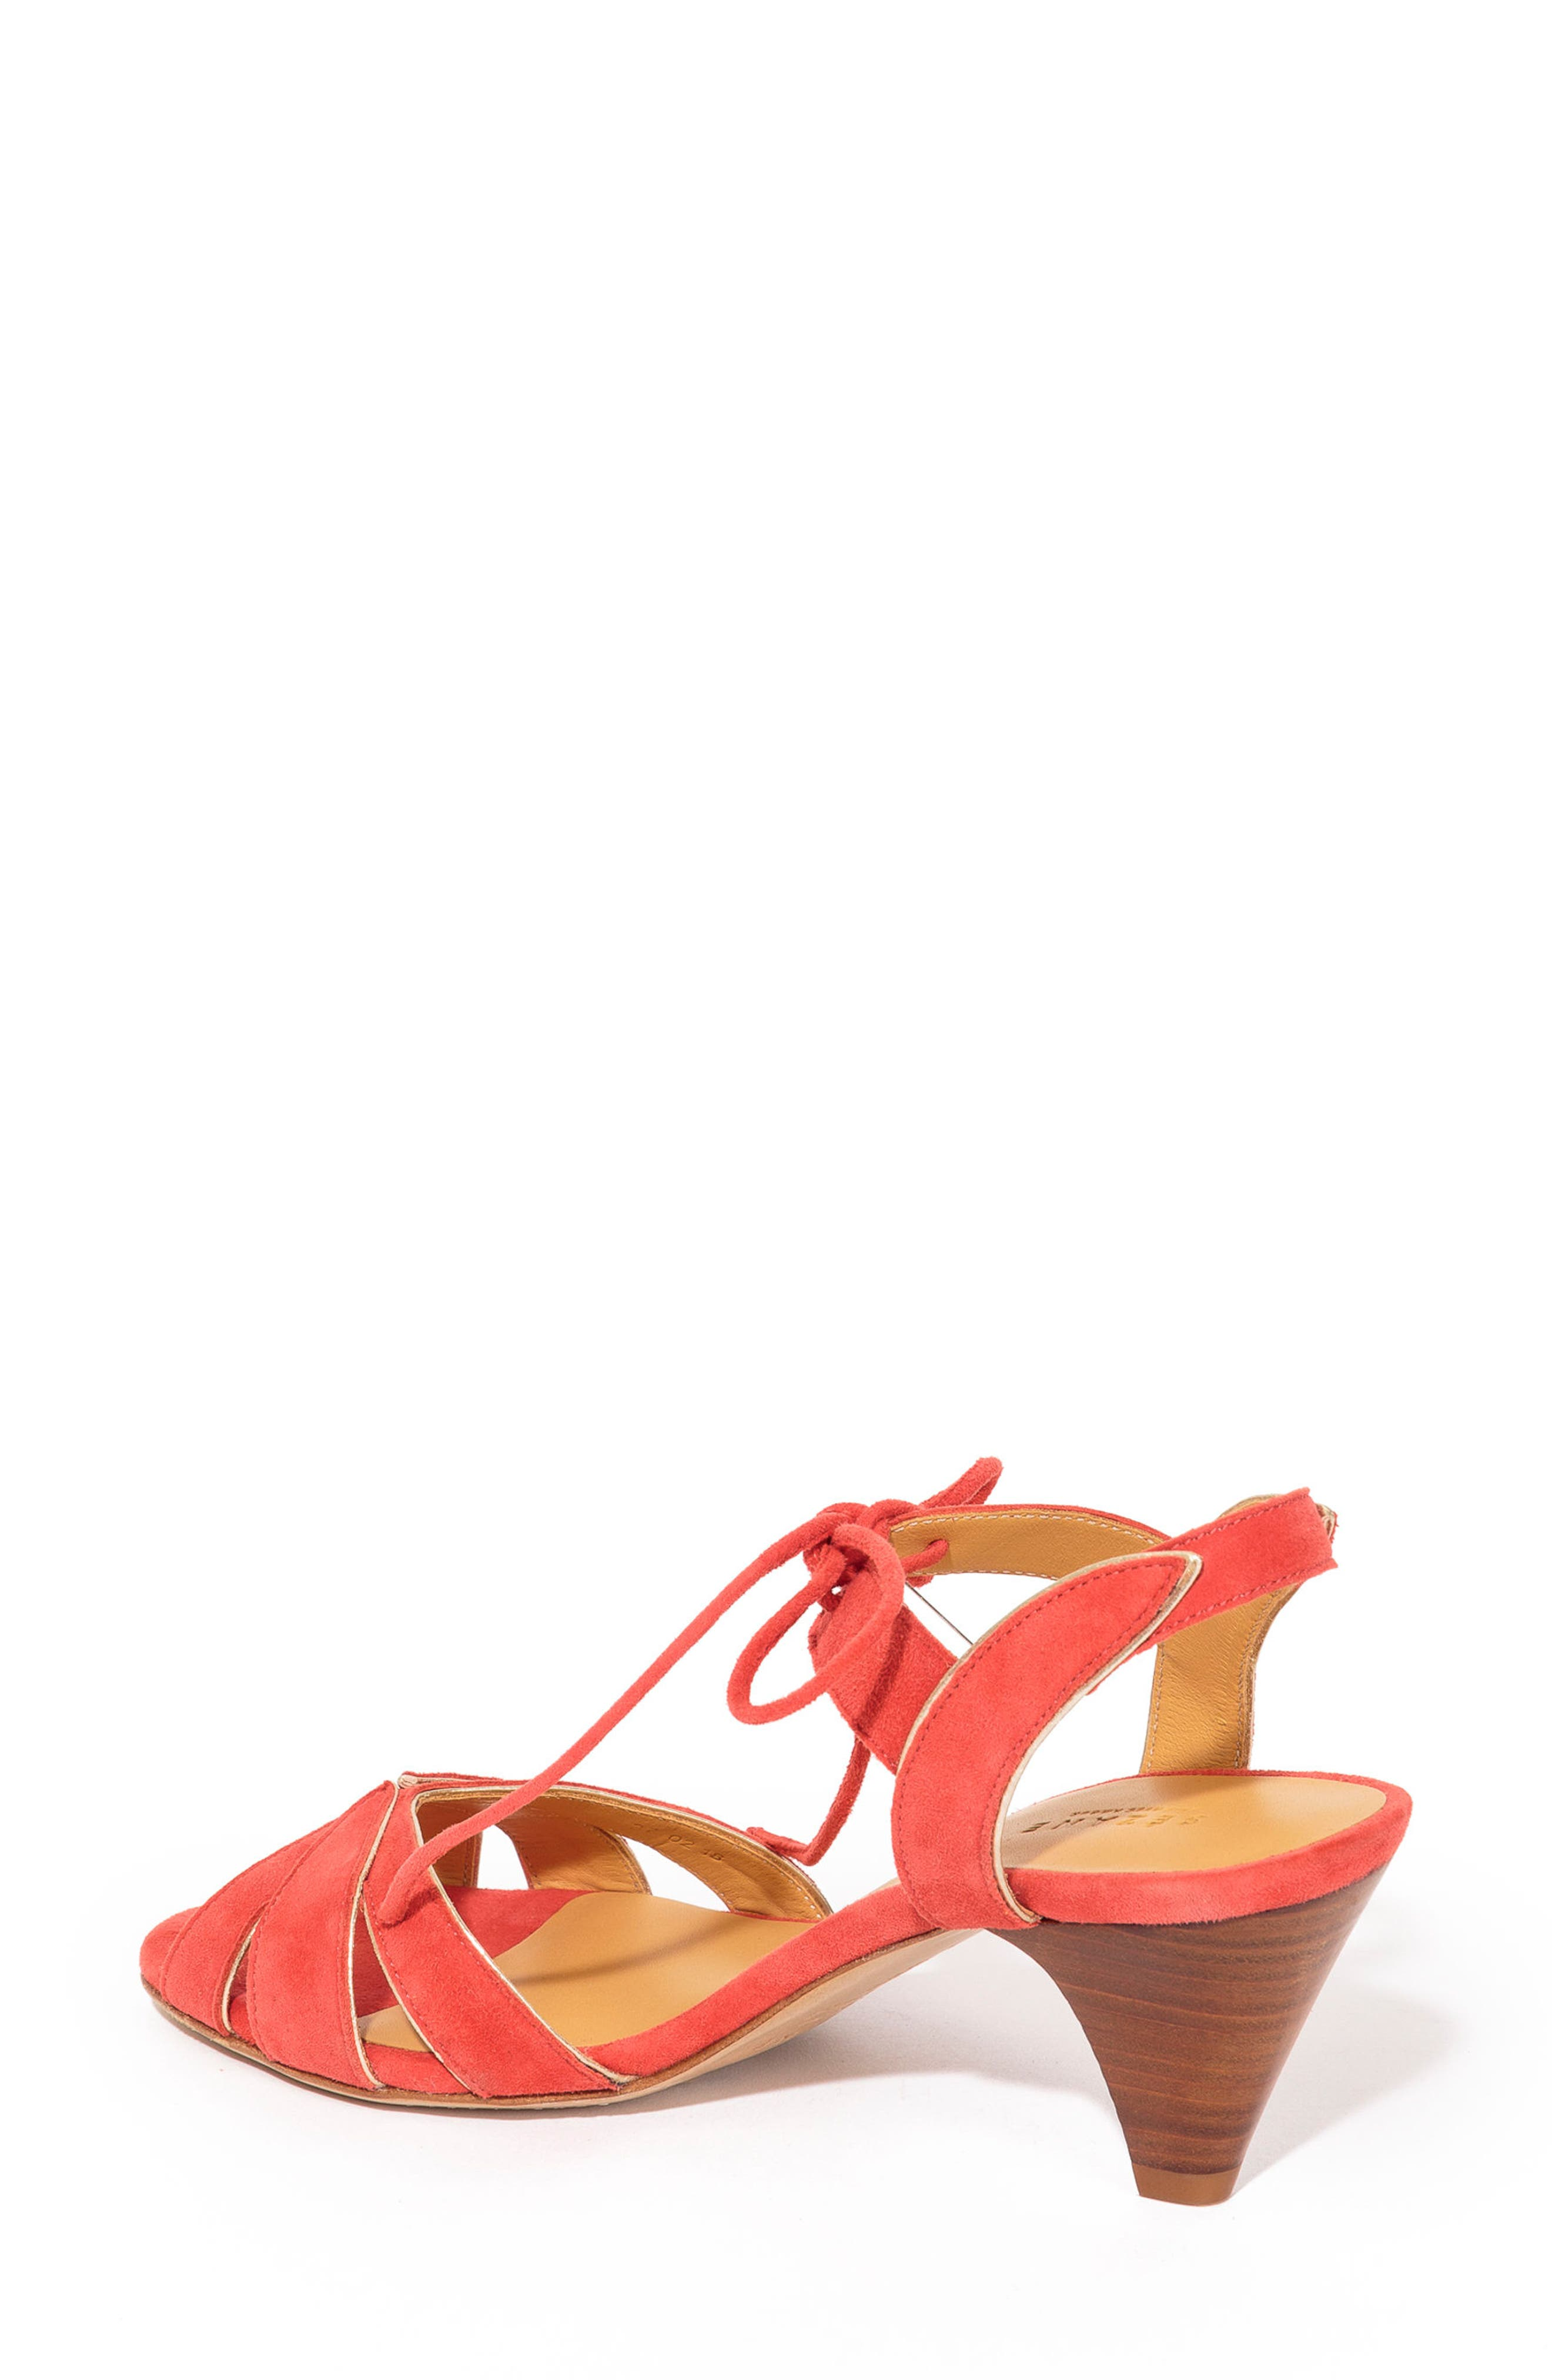 Victoire Ankle Tie Sandal,                             Alternate thumbnail 2, color,                             CORAL RED SUEDE